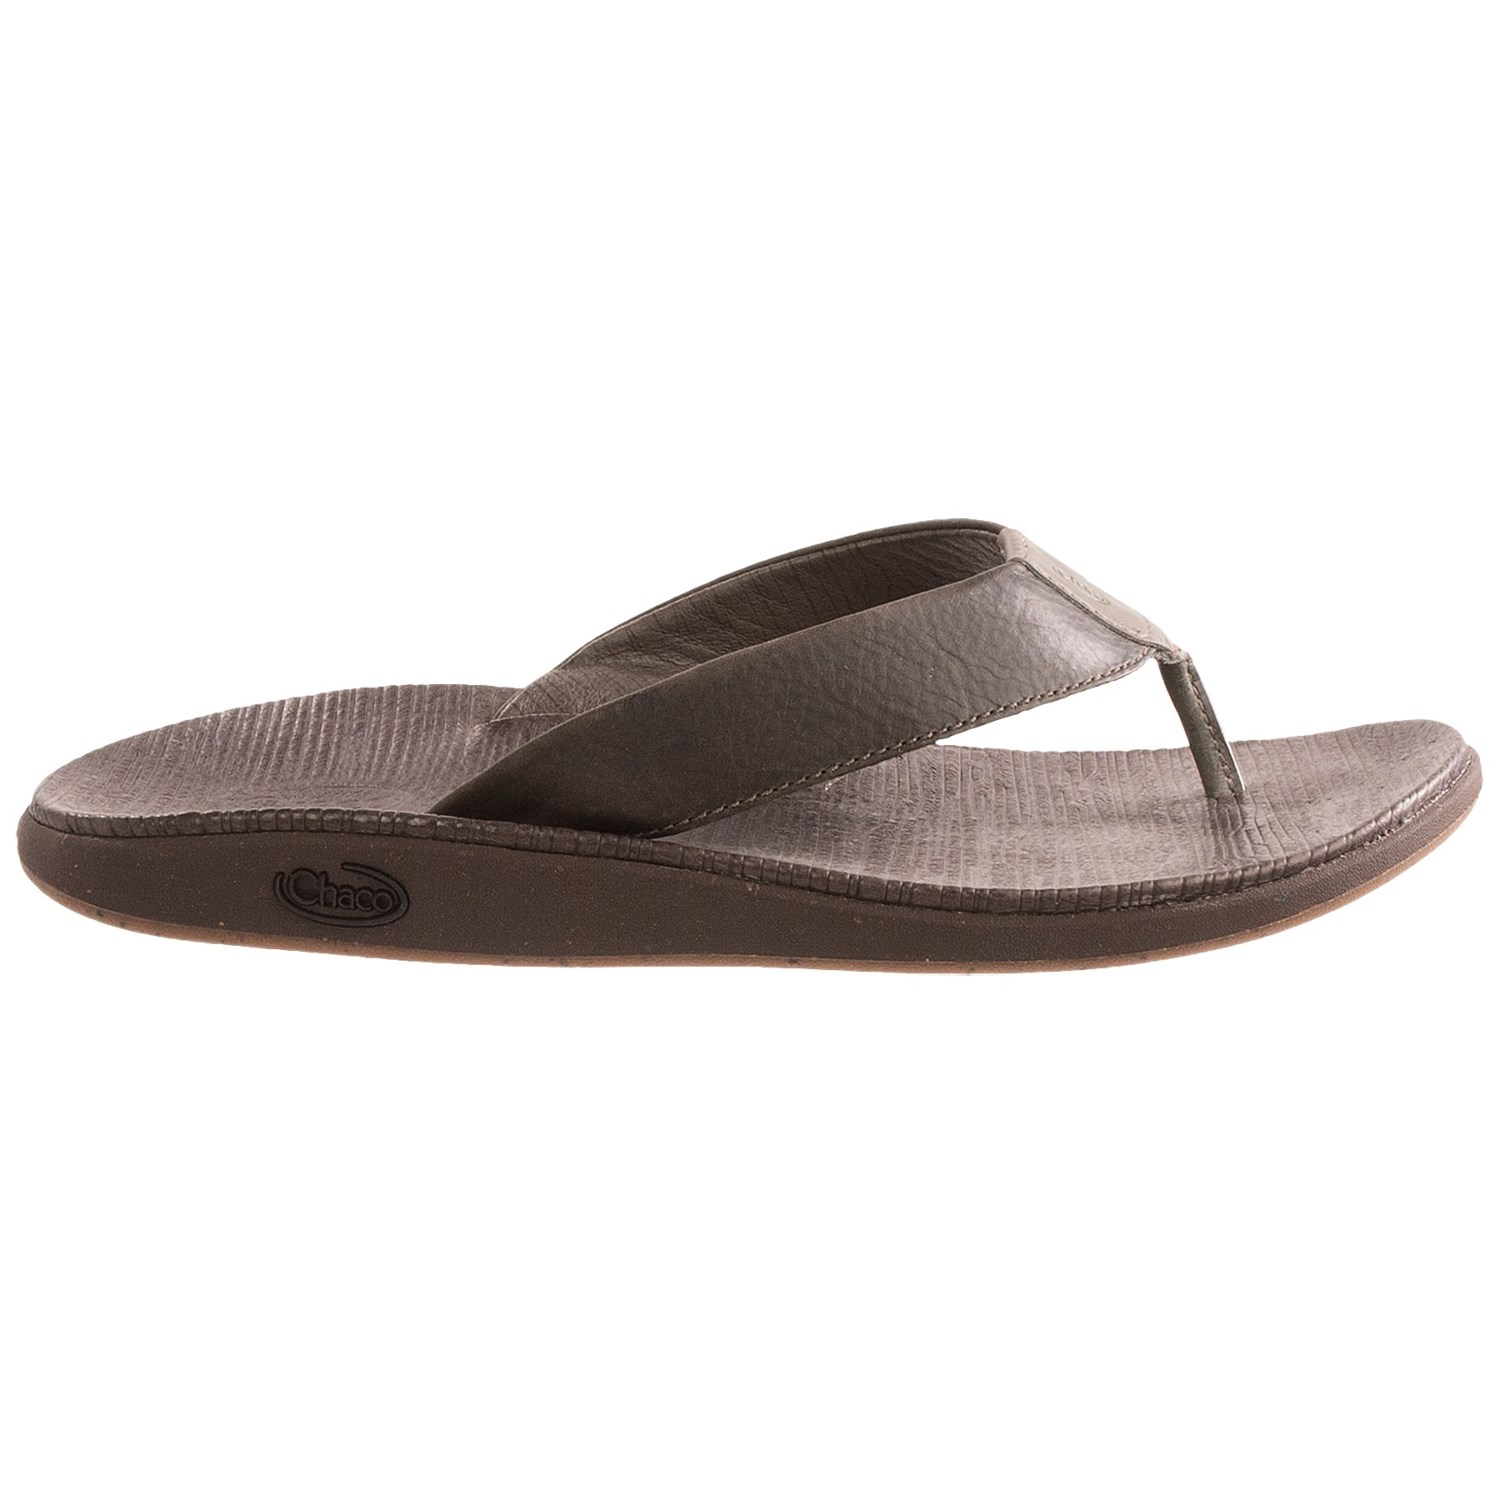 Chaco Nikolai Flip Flops For Men 8331d Save 65